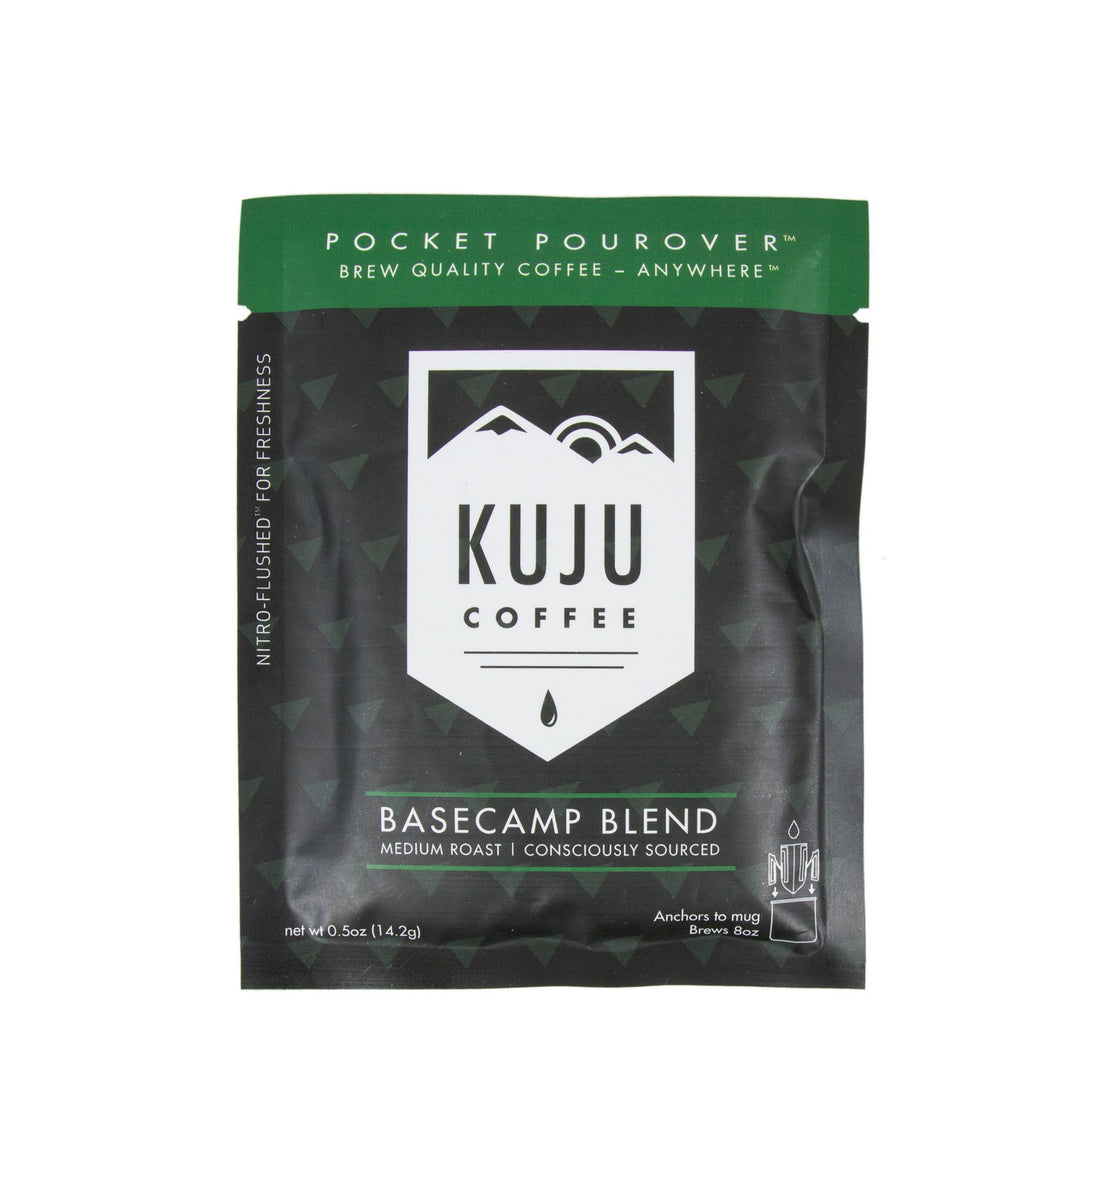 Kuju Coffee Pocket Pourover, Base Camp Blend - Food: Coffee - Iron and Resin